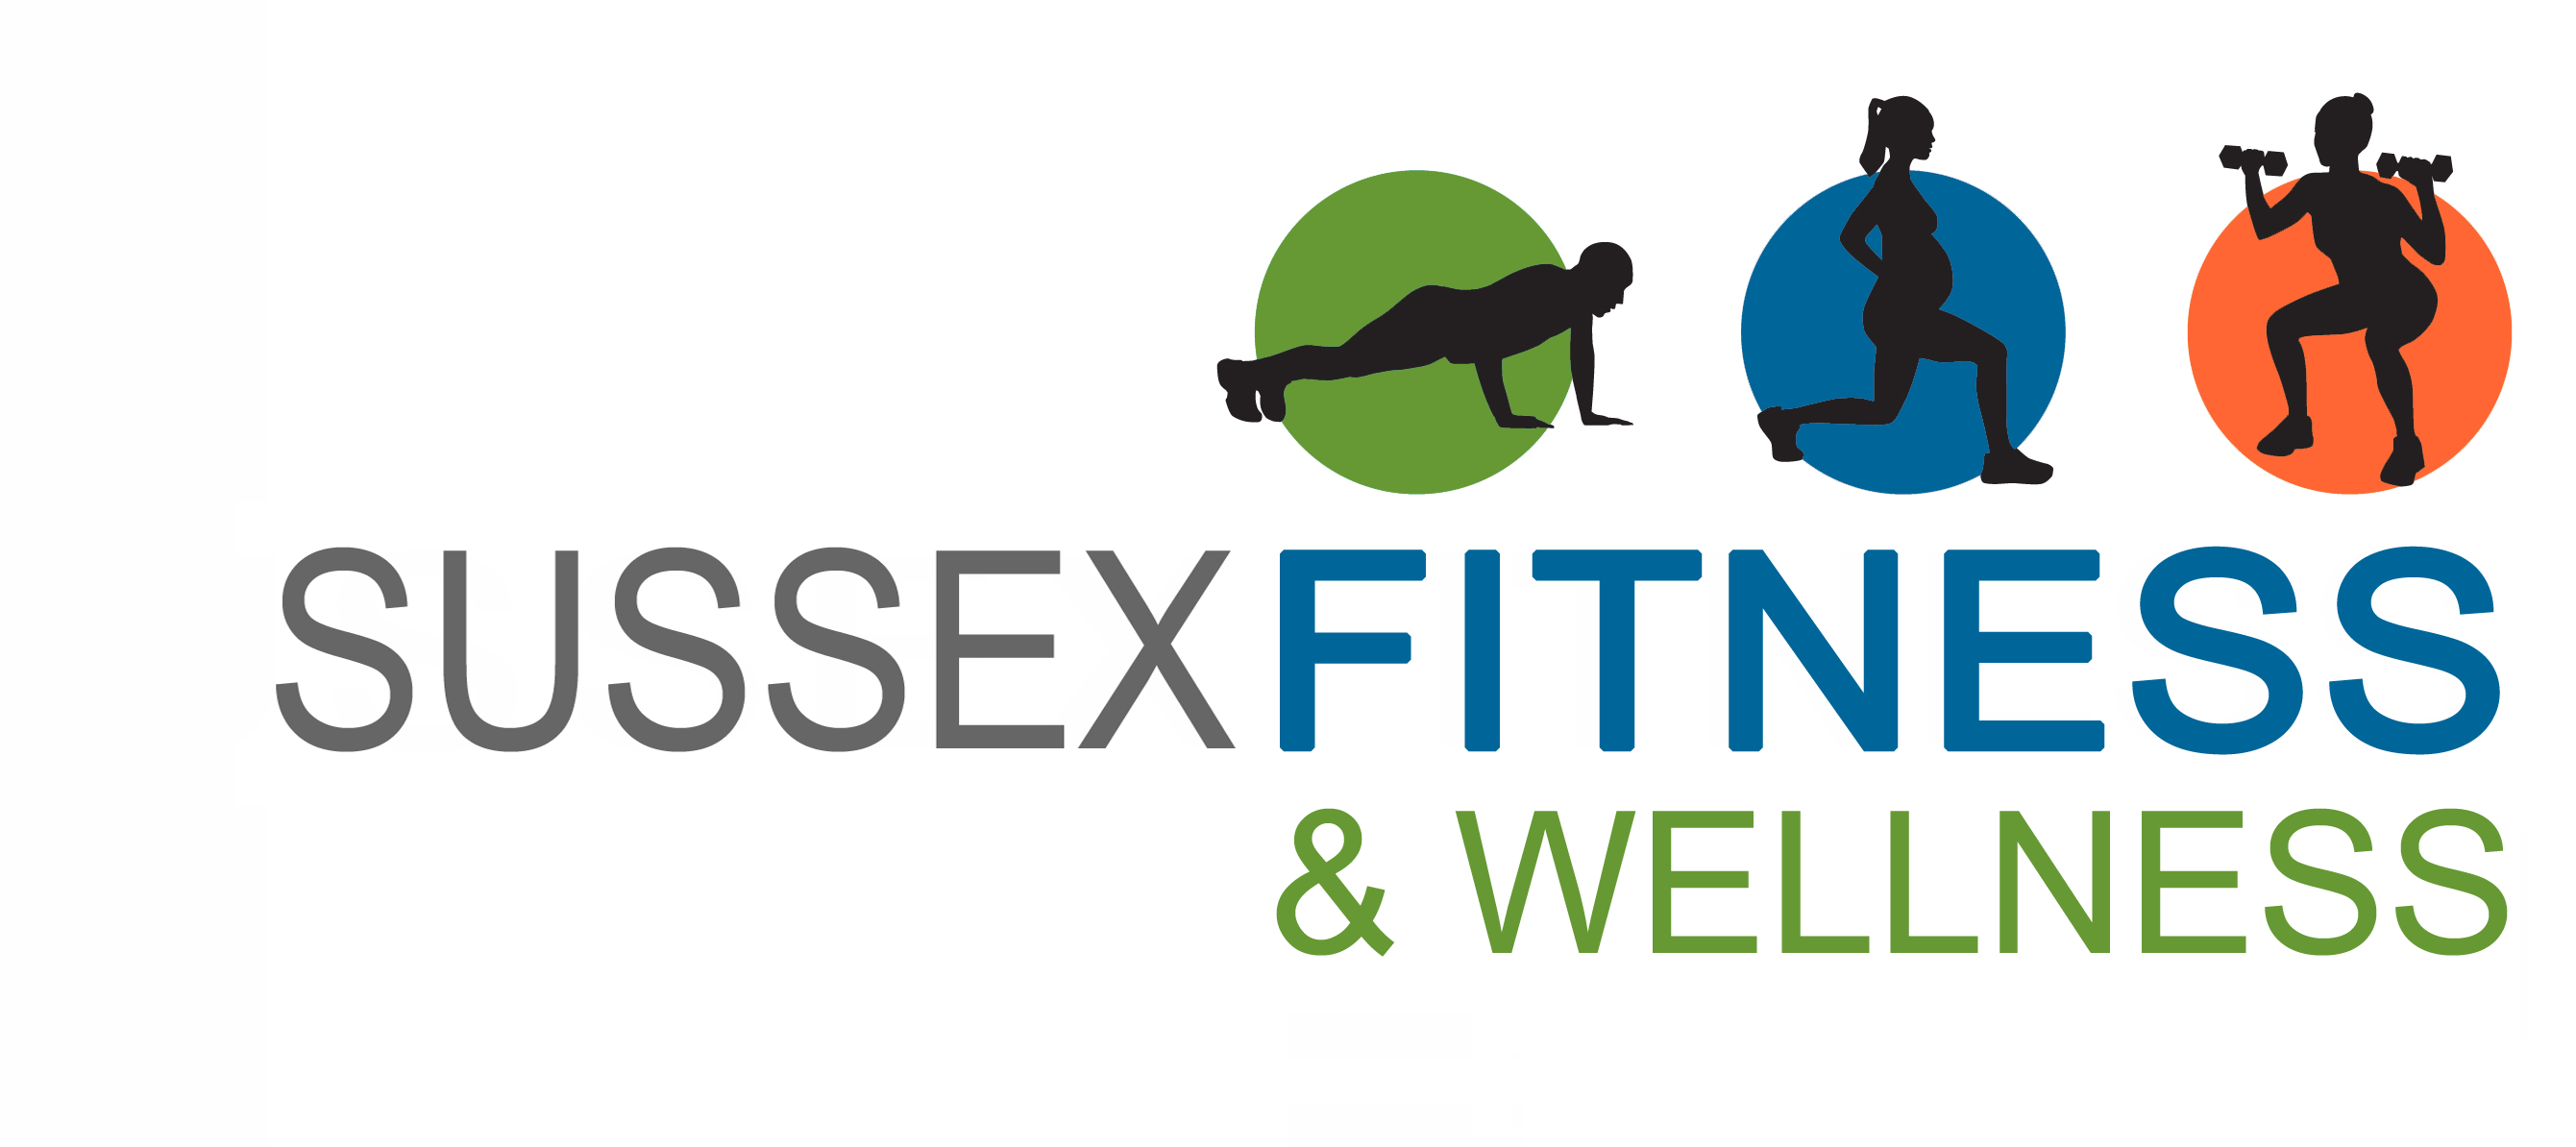 Sussex Fitness